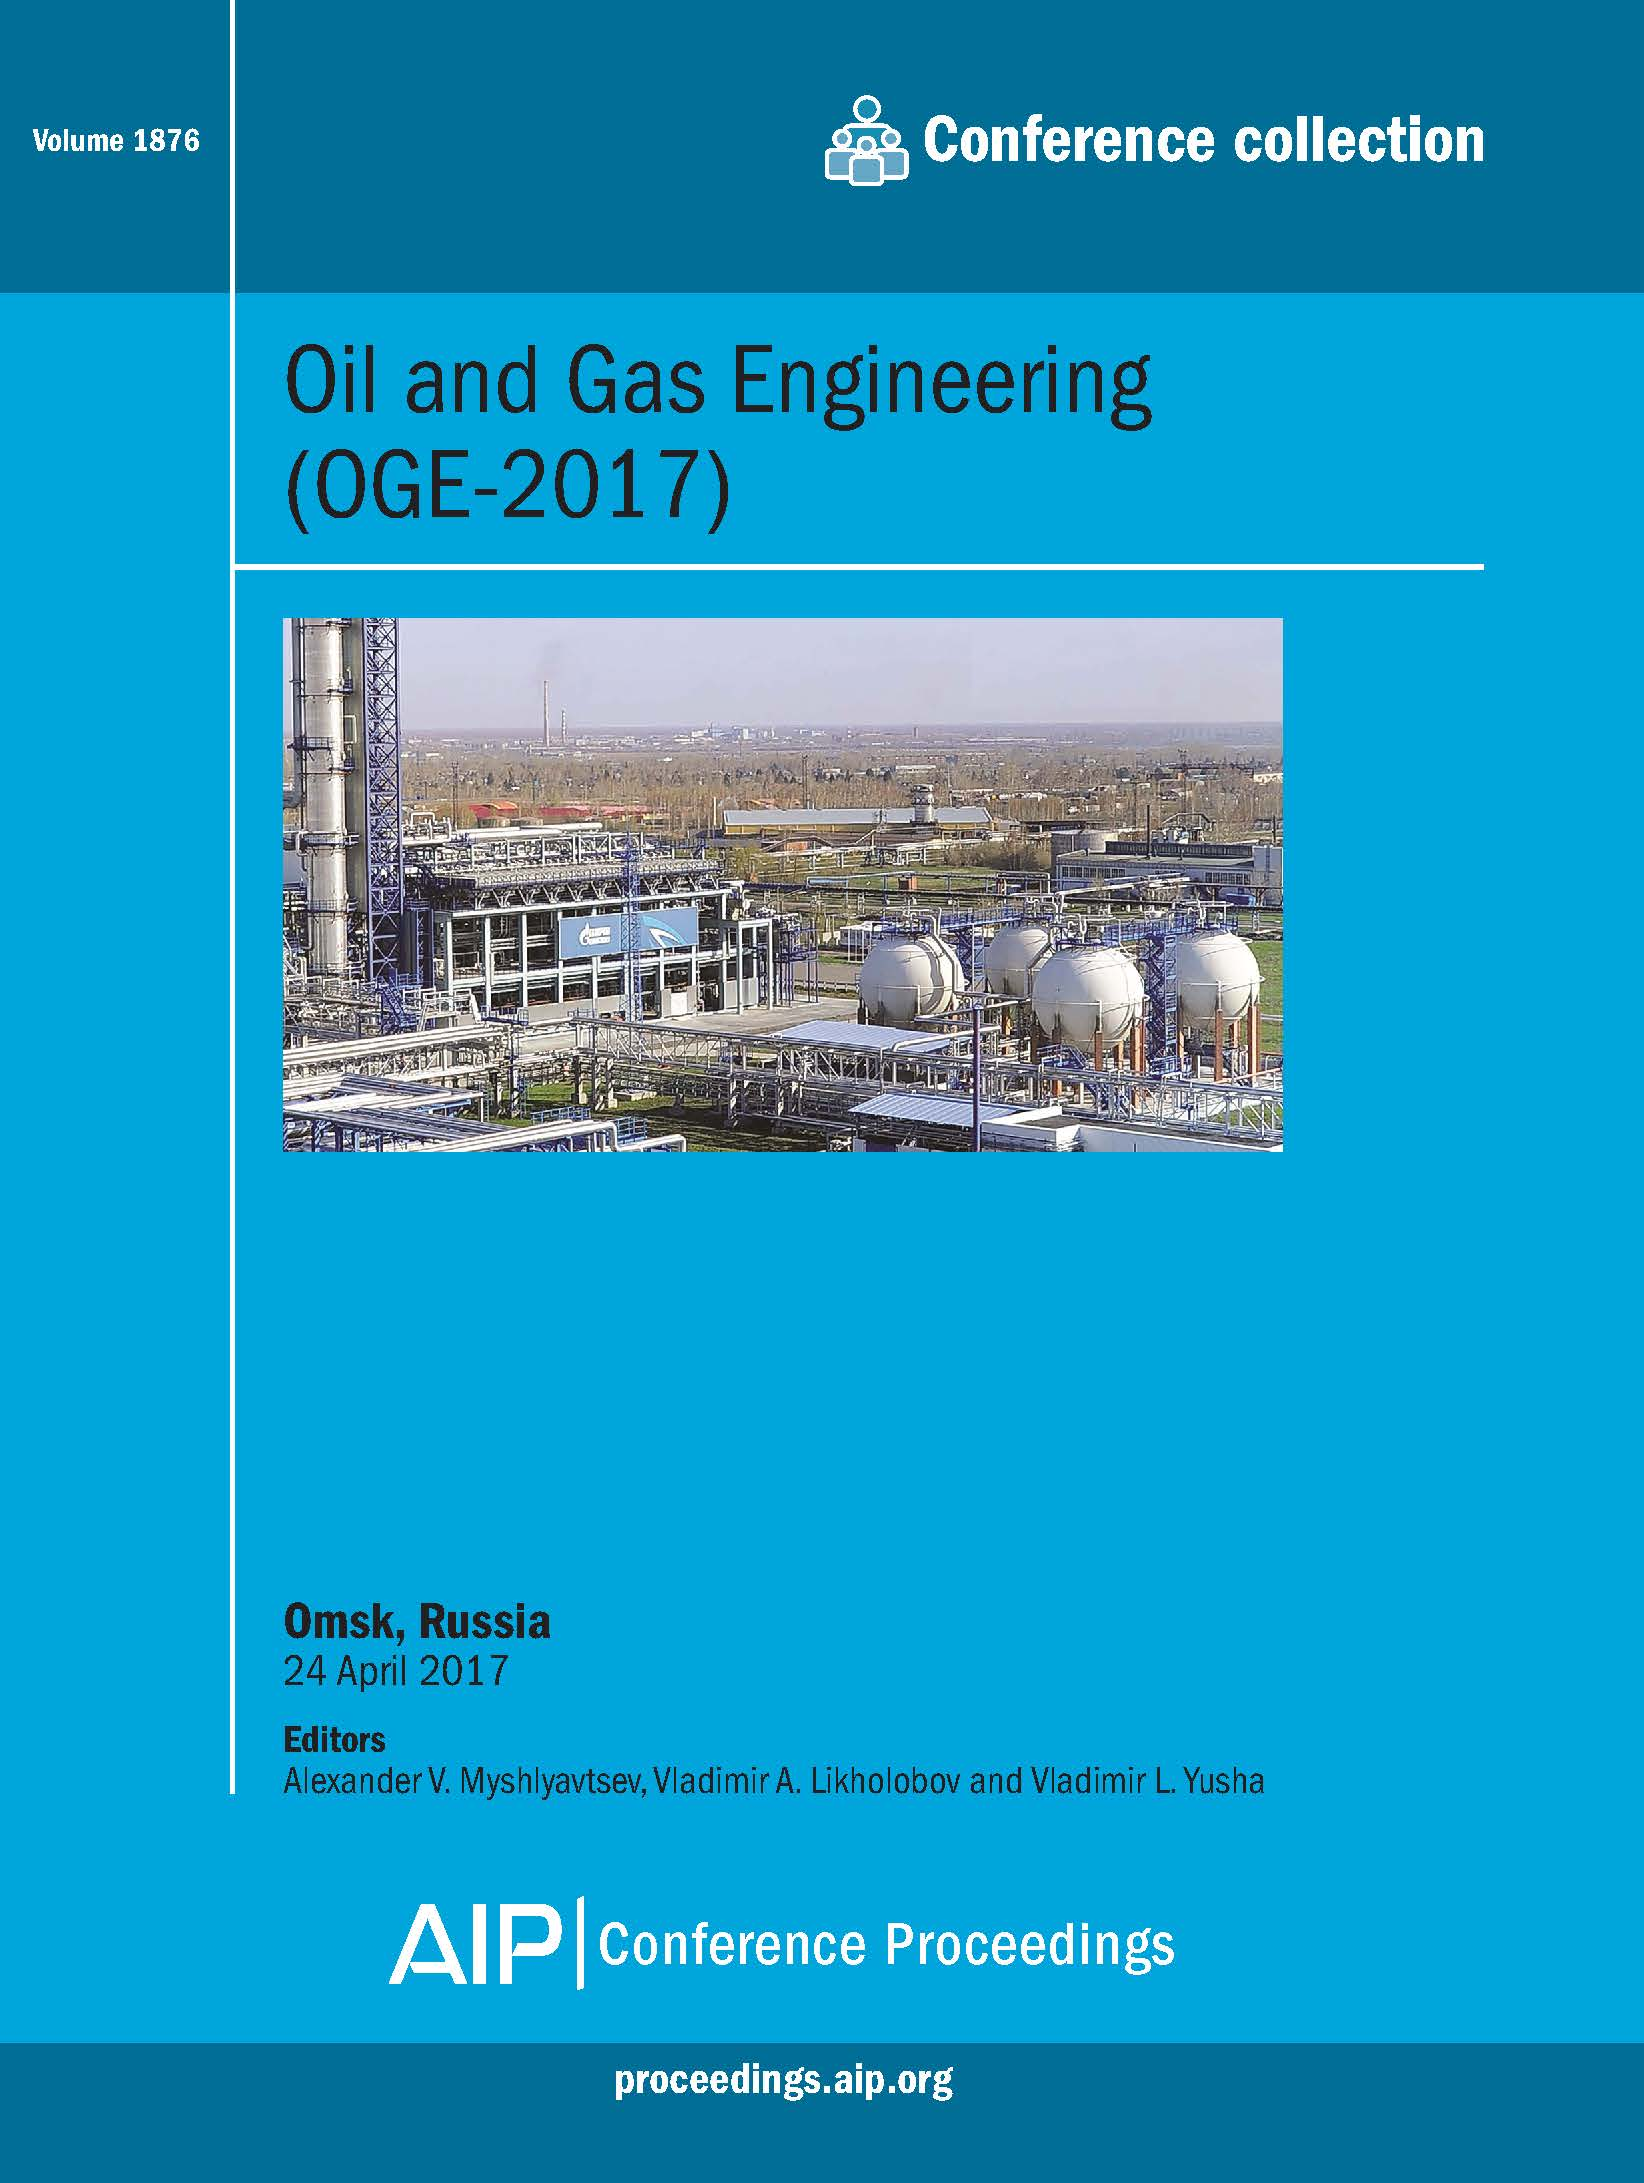 Volume 1876: Oil and Gas Engineering (OGE-2017)   AIP Publishing